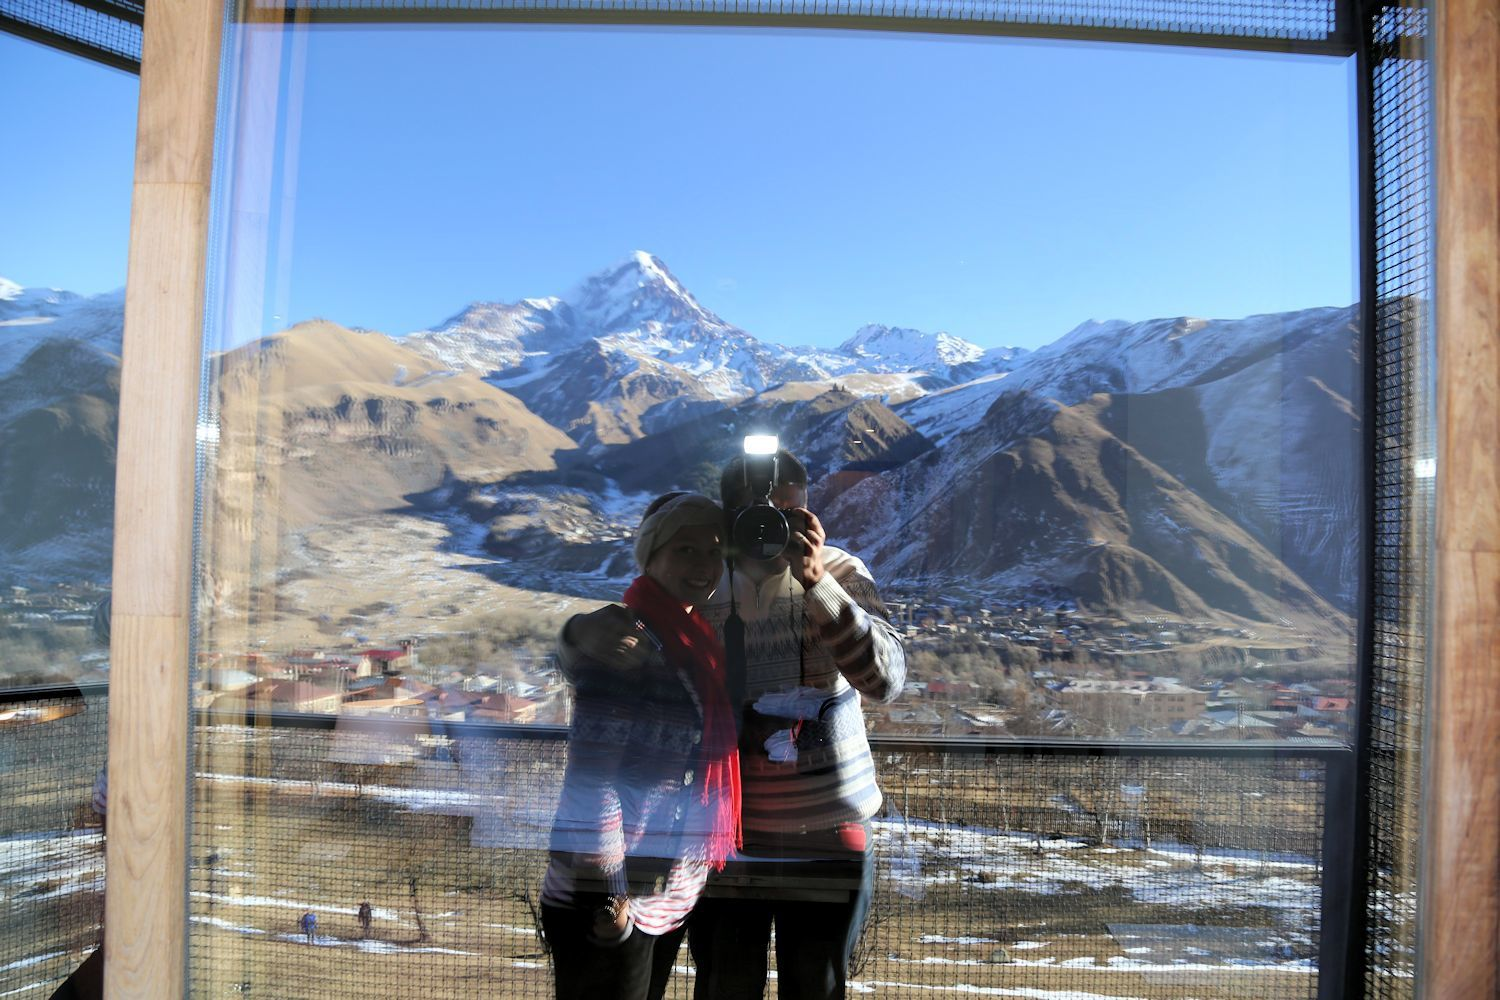 Our winter trip to Kazbegi